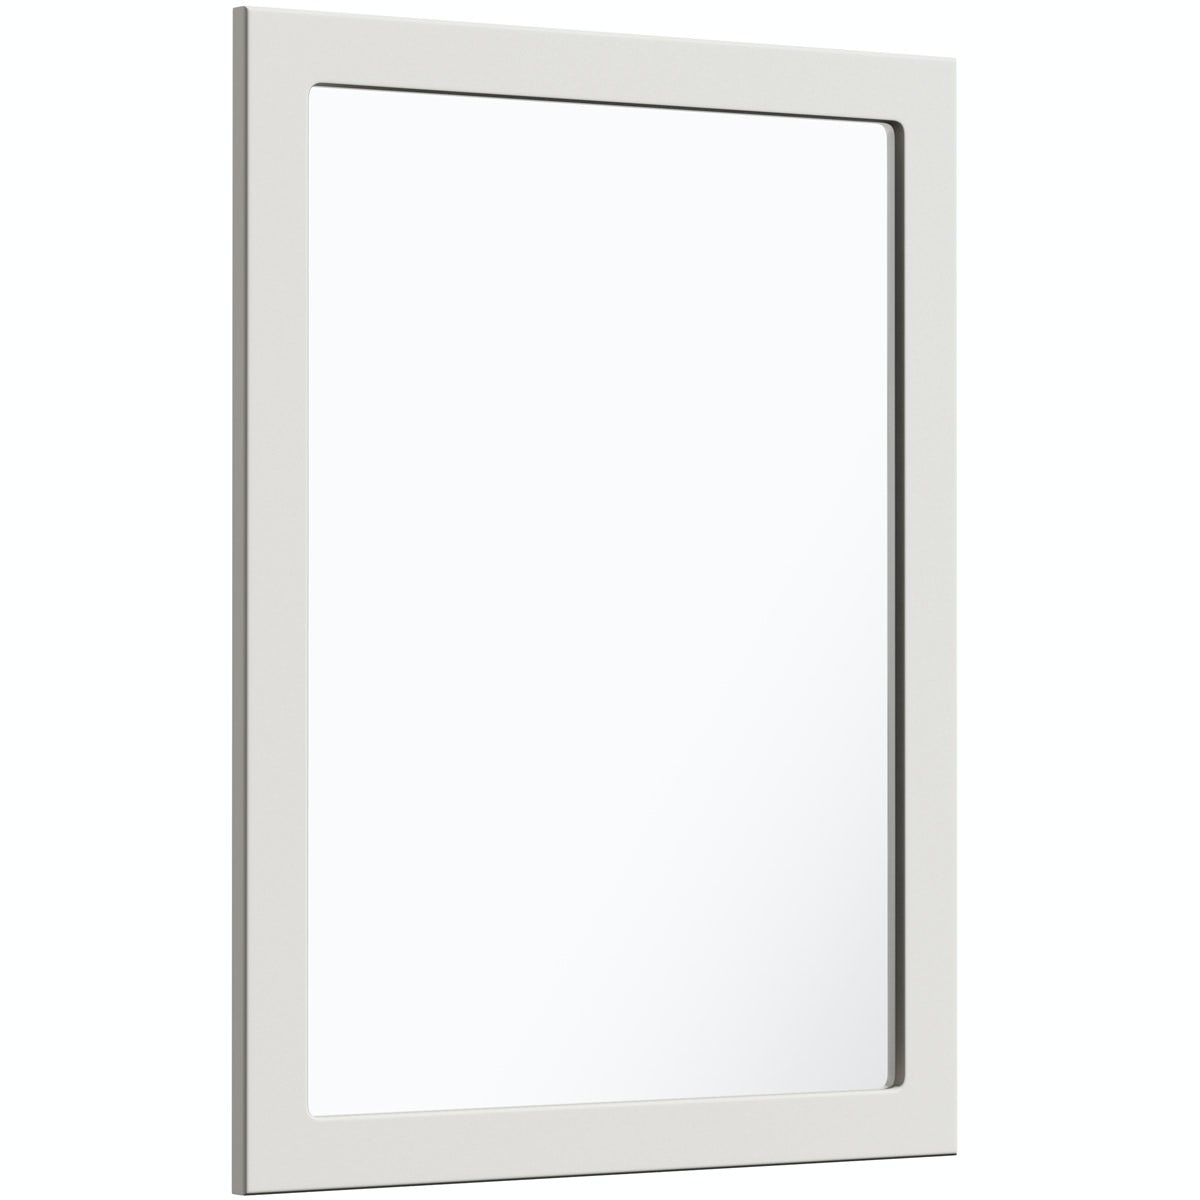 The Bath Co. Dulwich ivory mirror 600mm